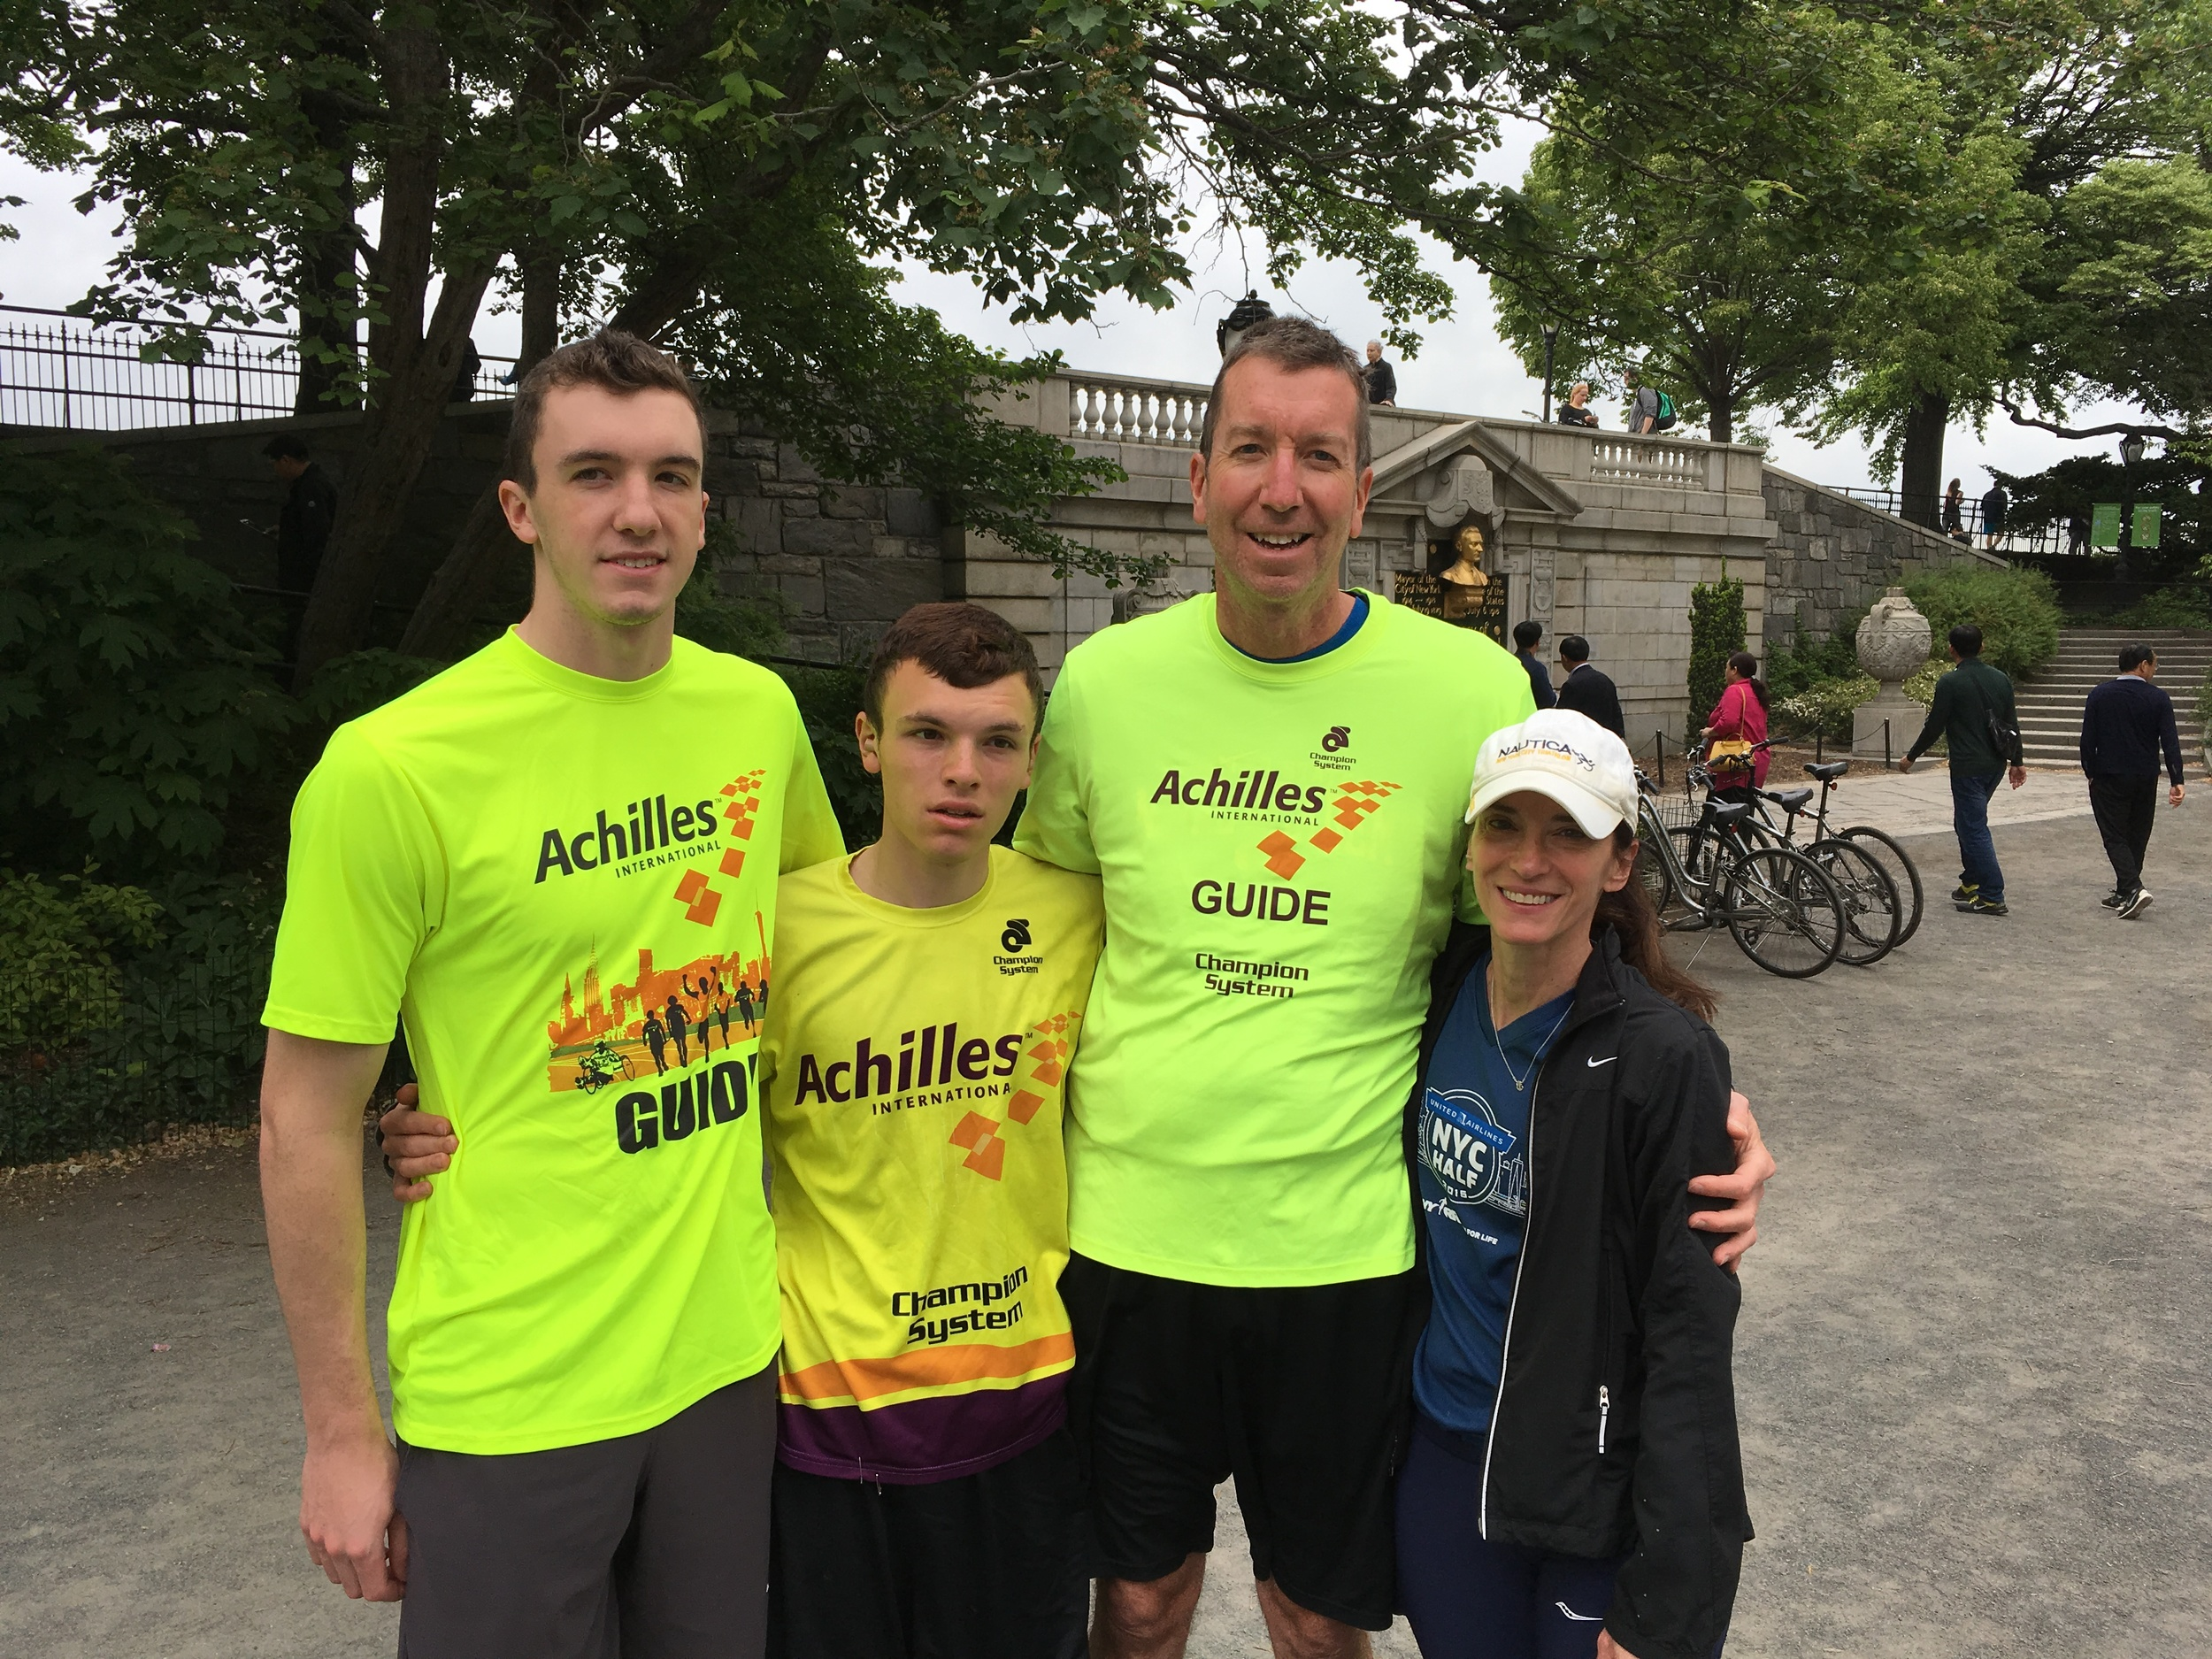 Dylan, Dustin, Mike, and Katie Sweeney @ Achilles Track Club - Central Park, New York City - May 2016